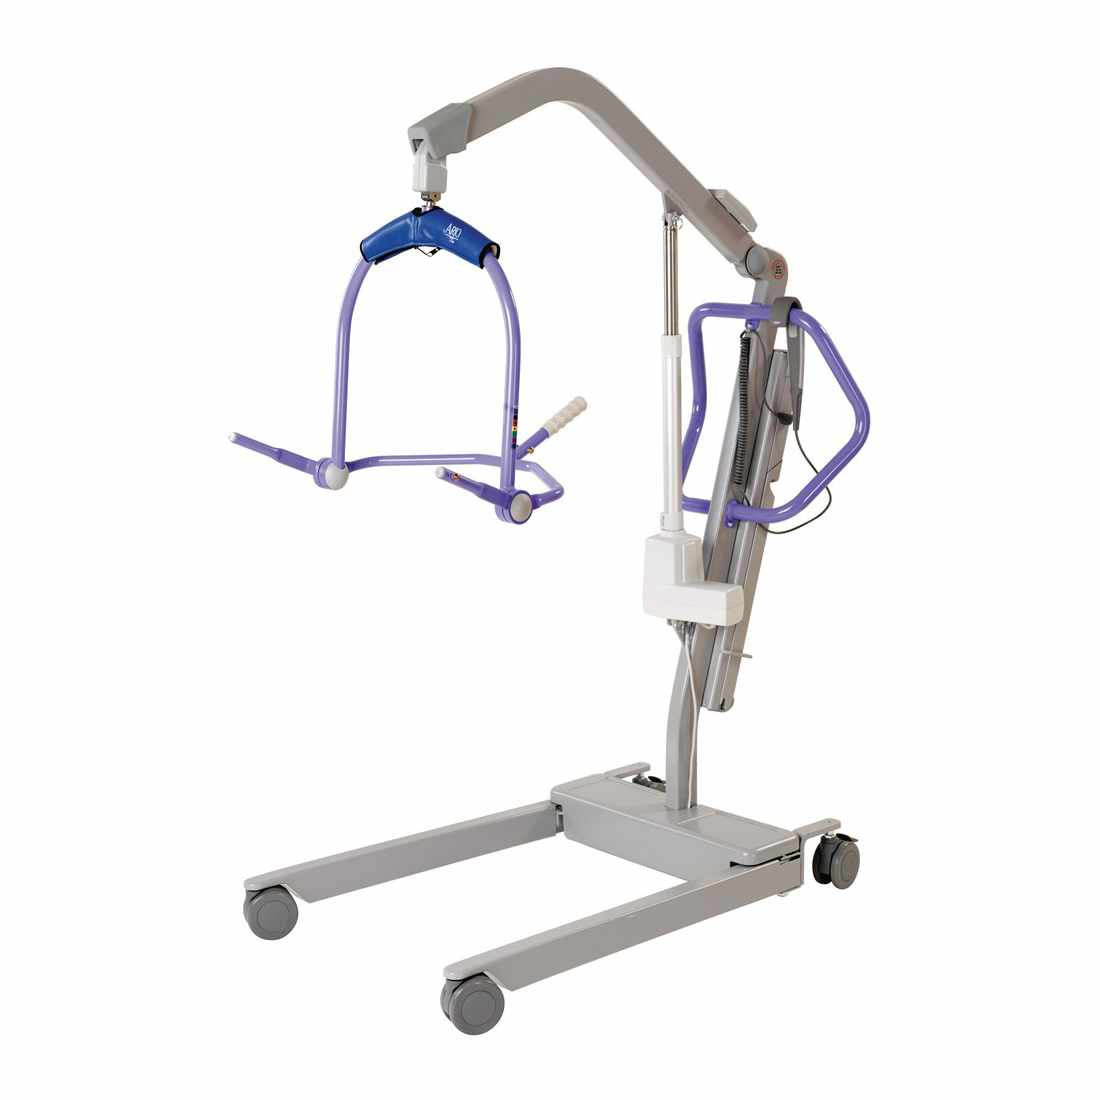 Arjo Maxi 500 power patient lift with manual DPS